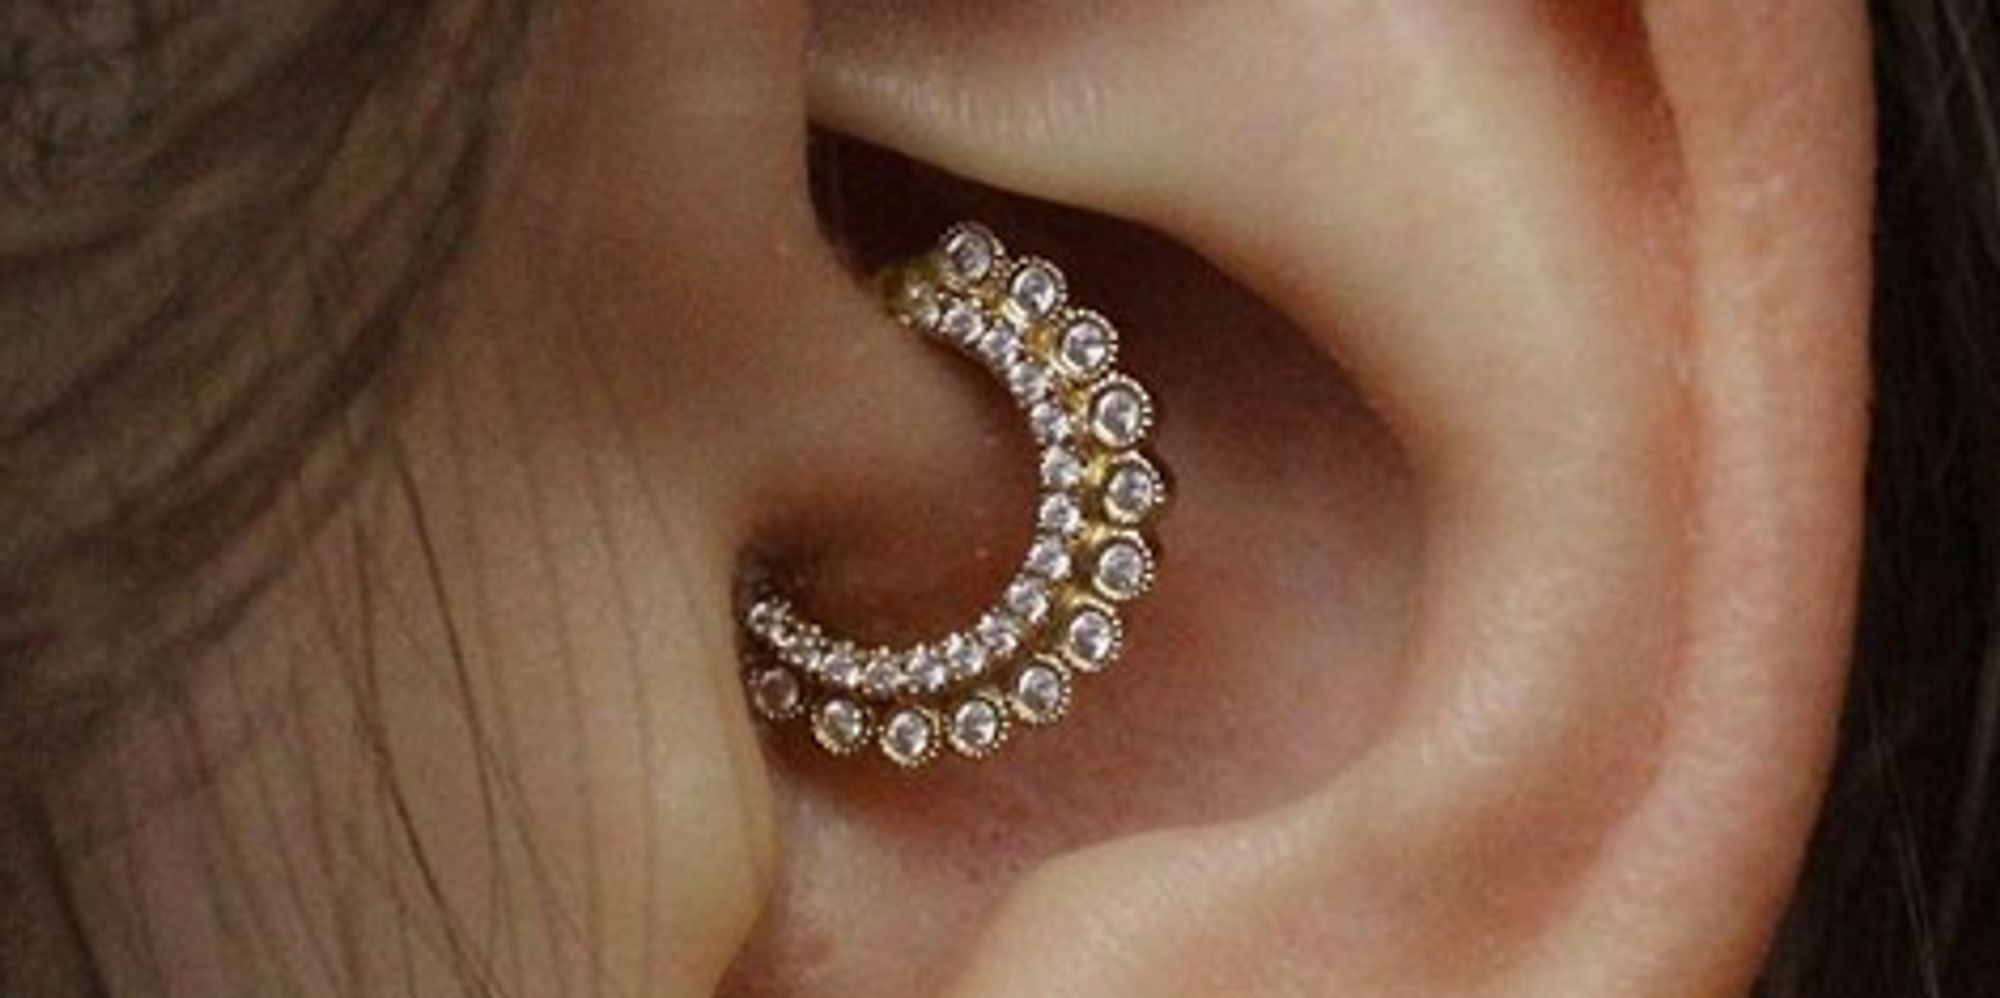 The 10 prettiest daith piercings that will make you want for Helix piercing jewelry canada